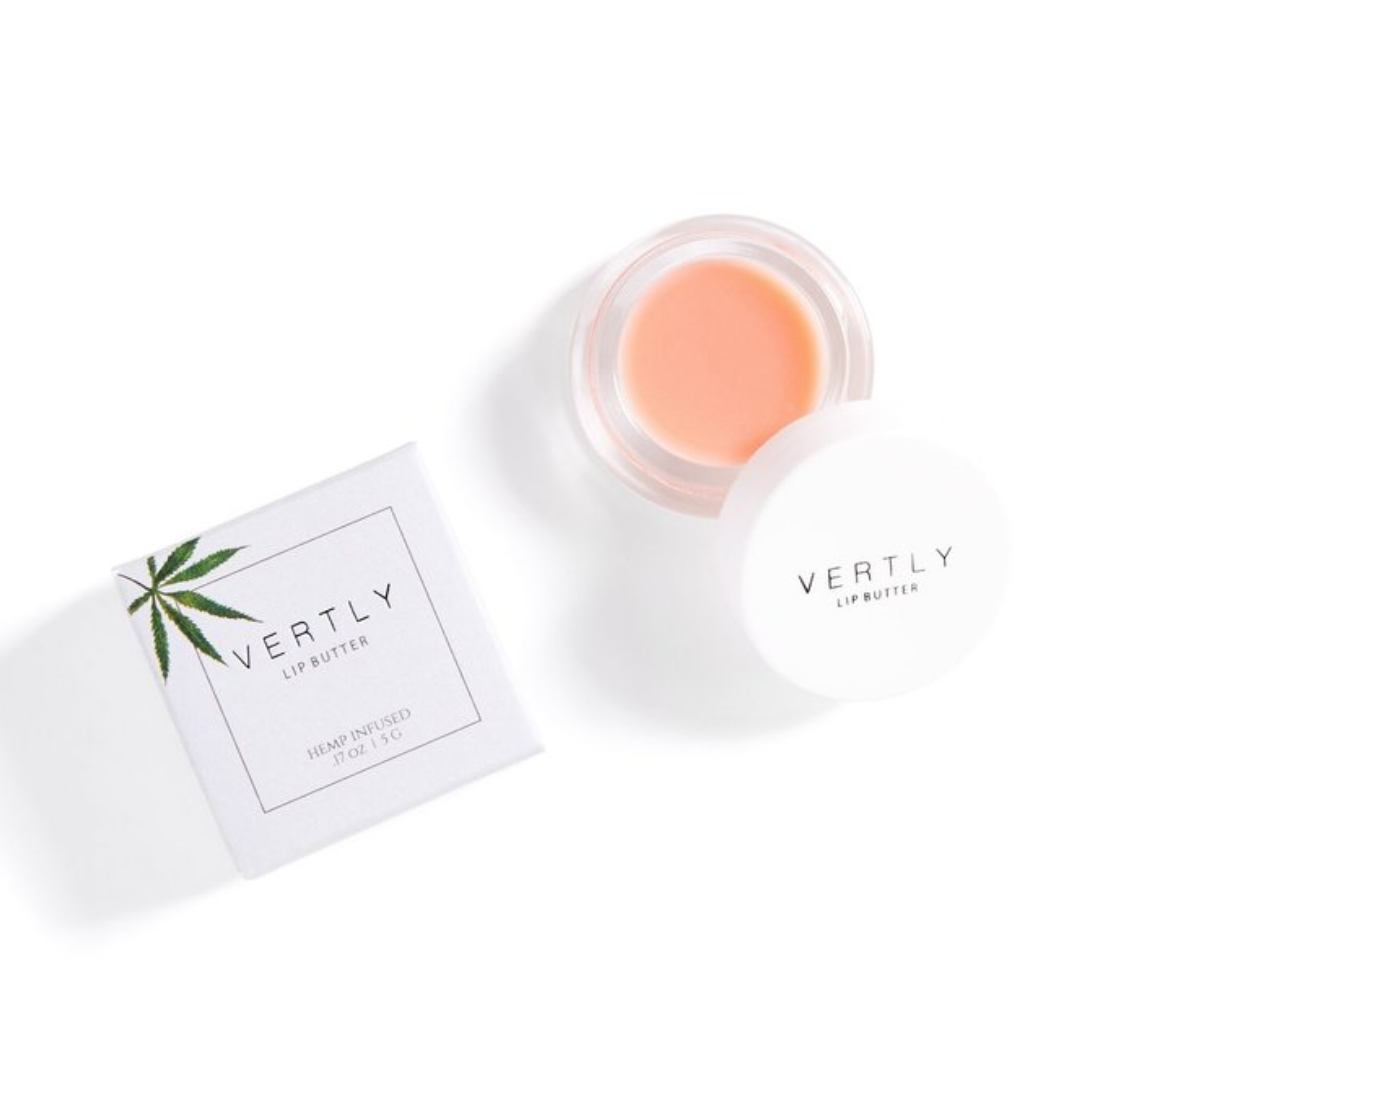 For the Girly Girl - Handcrafted with organic and nourishing ingredients like coconut and jojoba oils, shea, cacao and kokum butters, this lip balm will moisturize, heal and protect your lips. Made with hemp-derived CBD, which has anti-inflammatory, anti-anxiety and anti-oxidant properties. Available in peppermint and rose scents (rose is our fave).